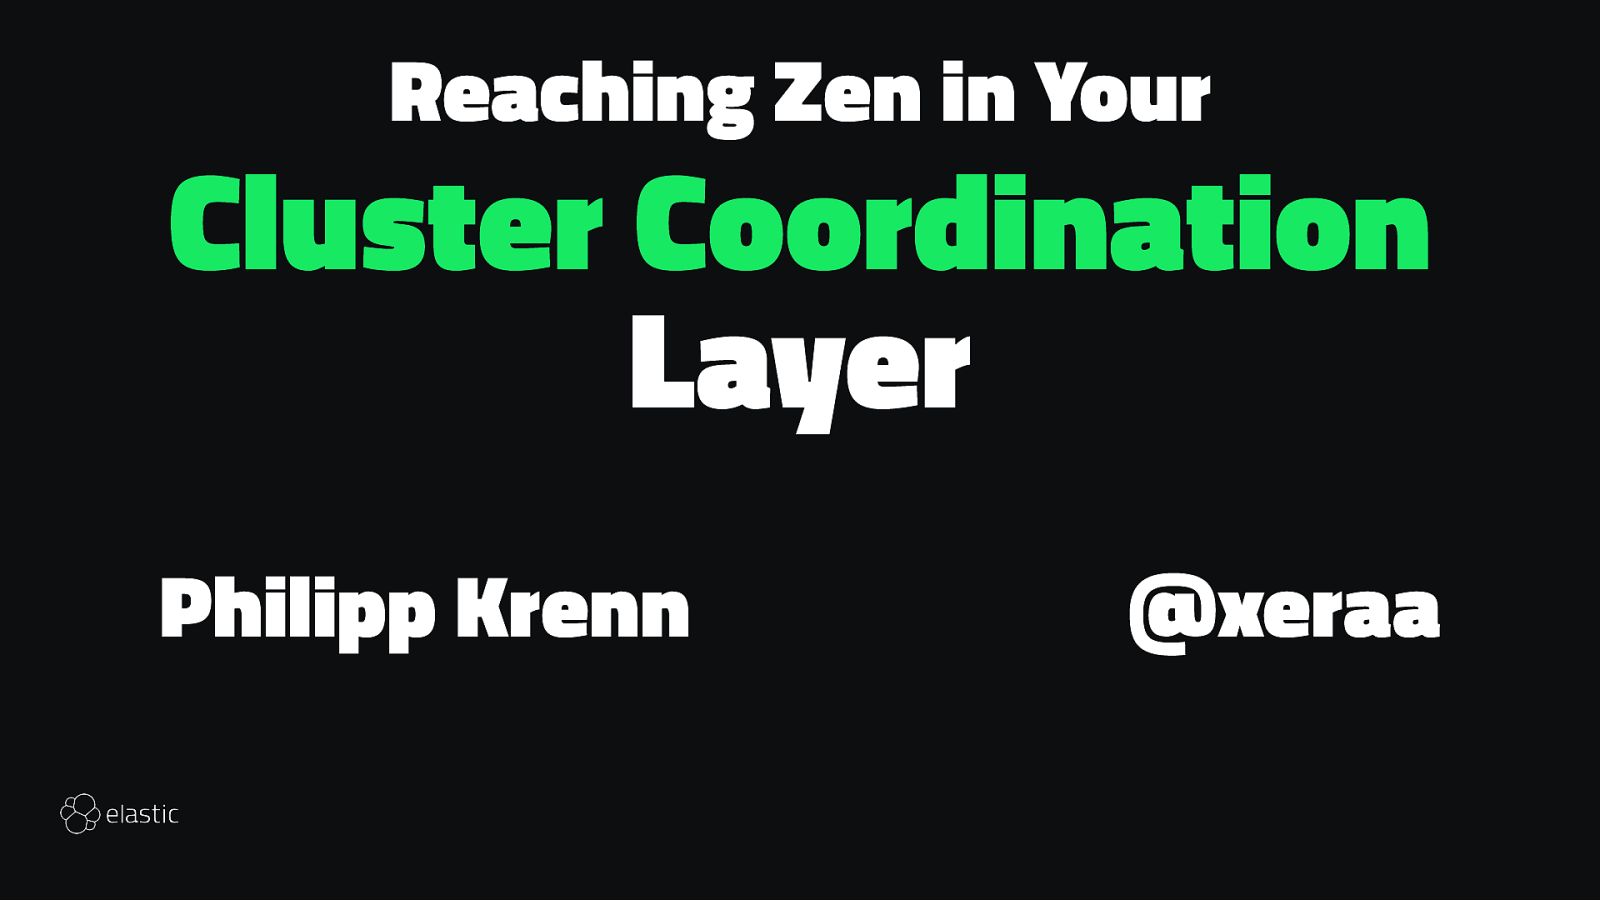 Reaching Zen in Your Cluster Coordination Layer